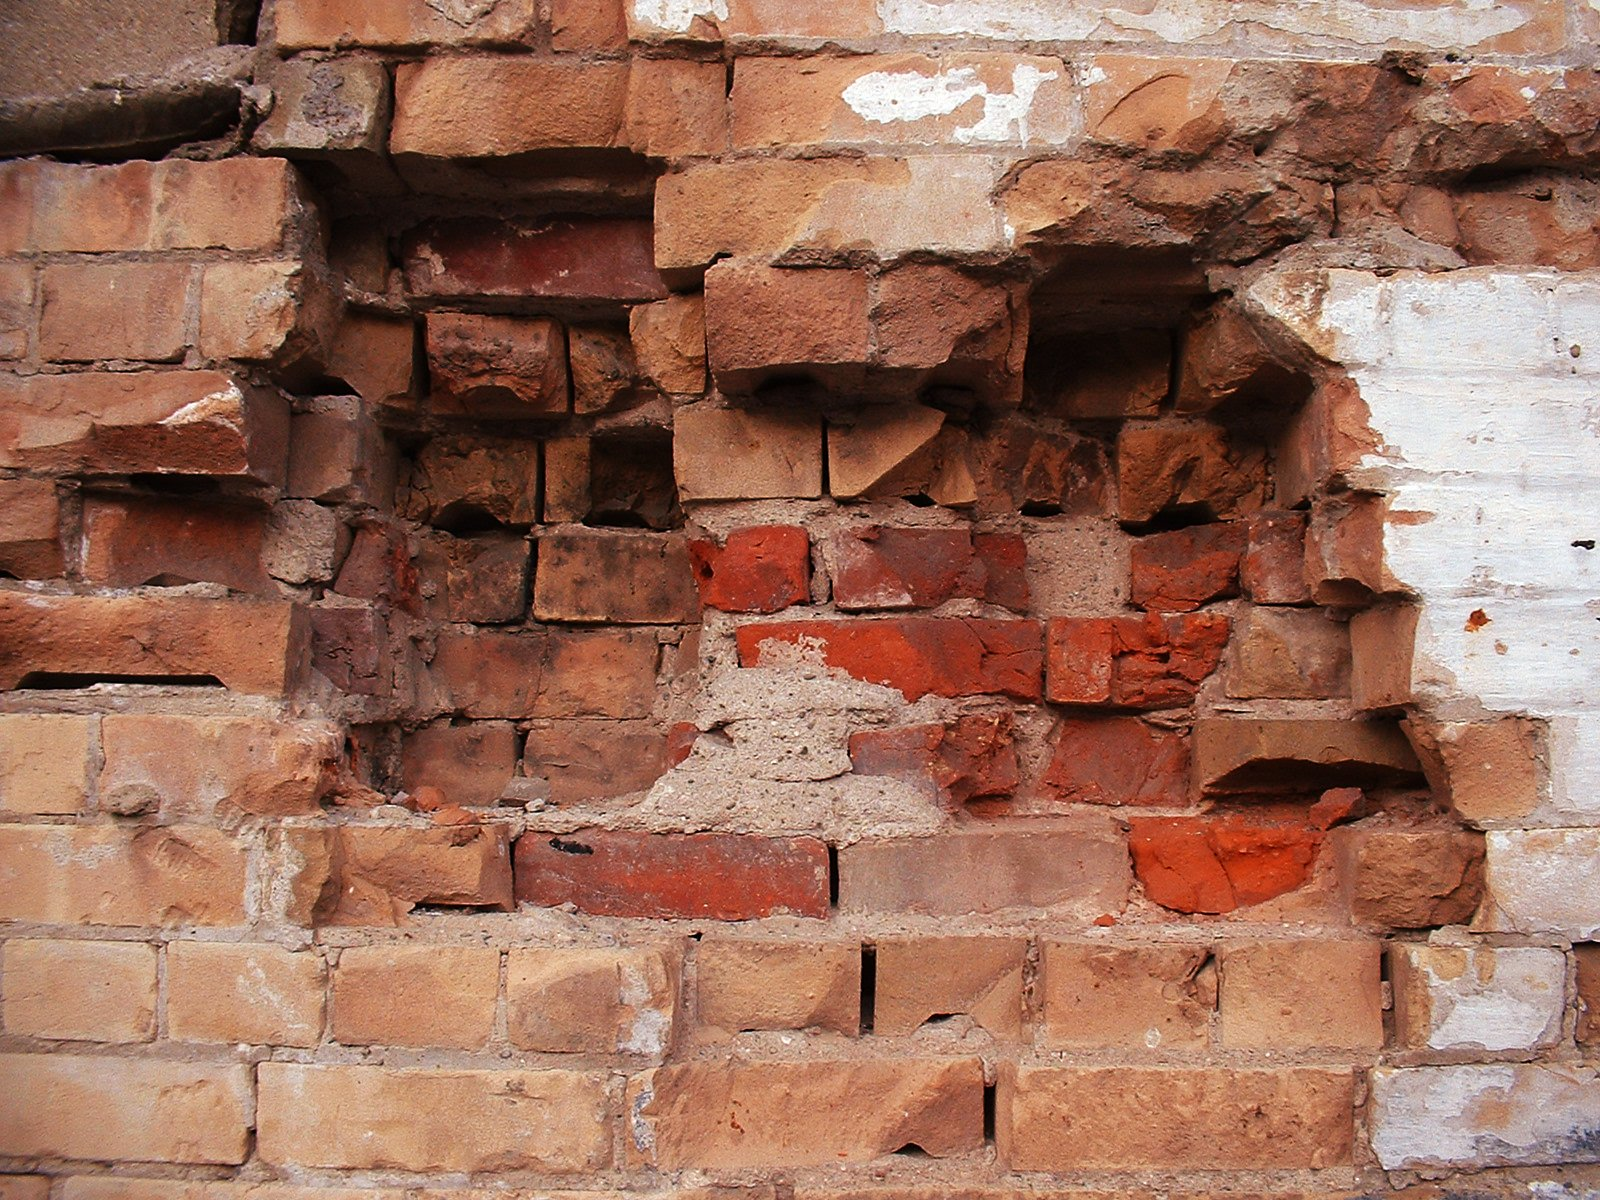 Free Holes in a Brick Wall Stock Photo - FreeImages.com